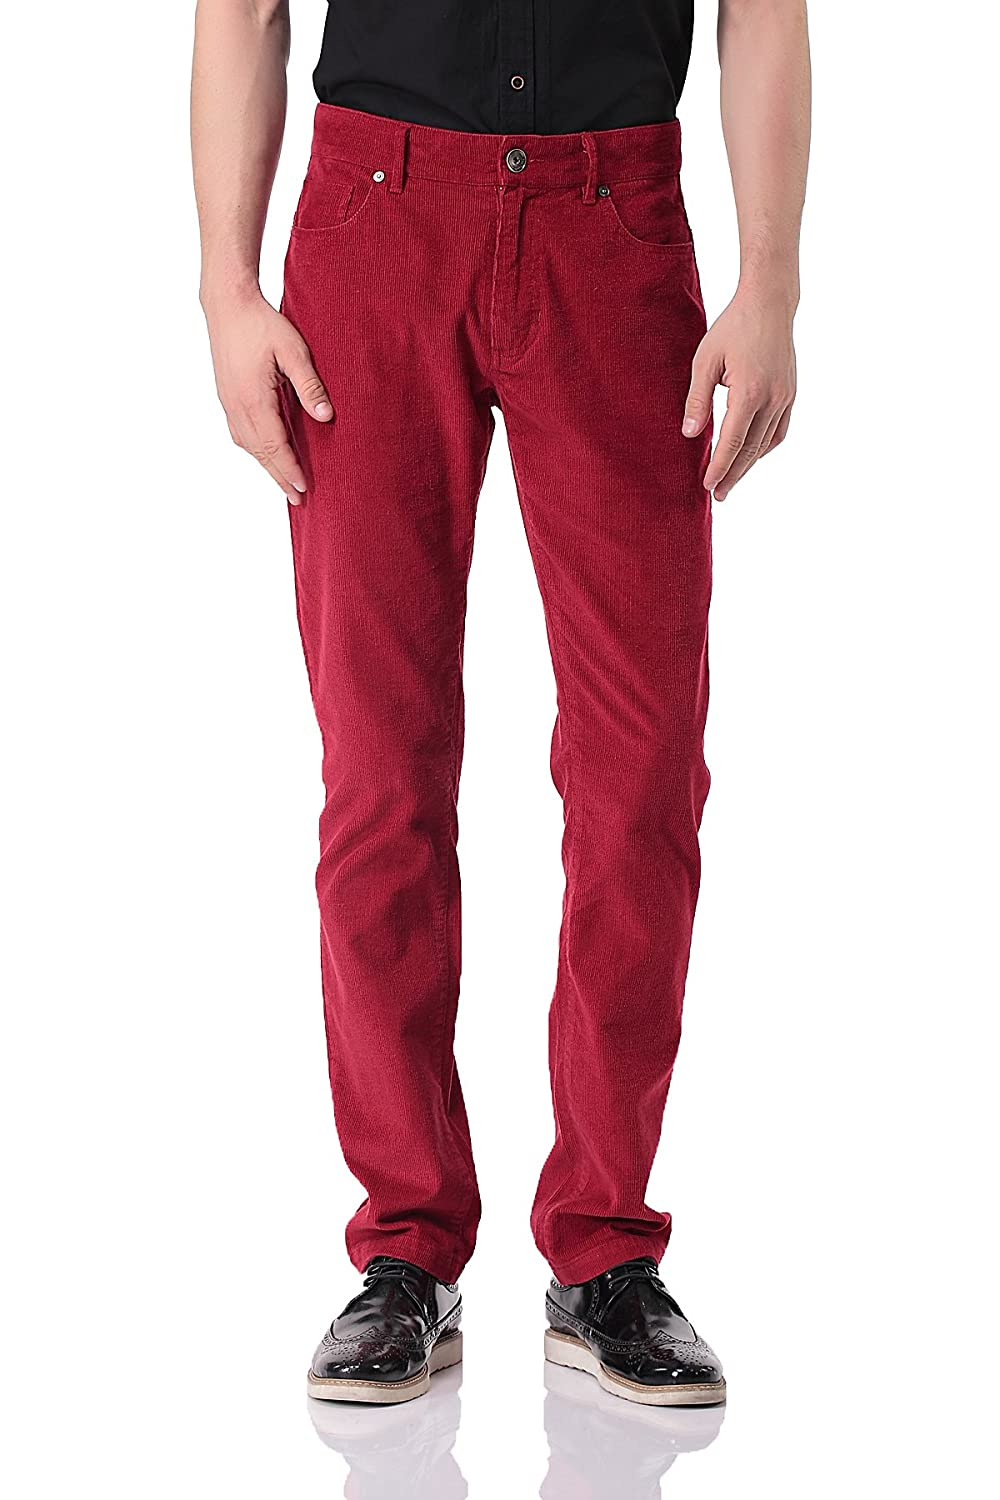 Pau1Hami1ton PH-06 Men's Corduroy Trousers Straight leg Slim Fit Casual Pants PH-06-1